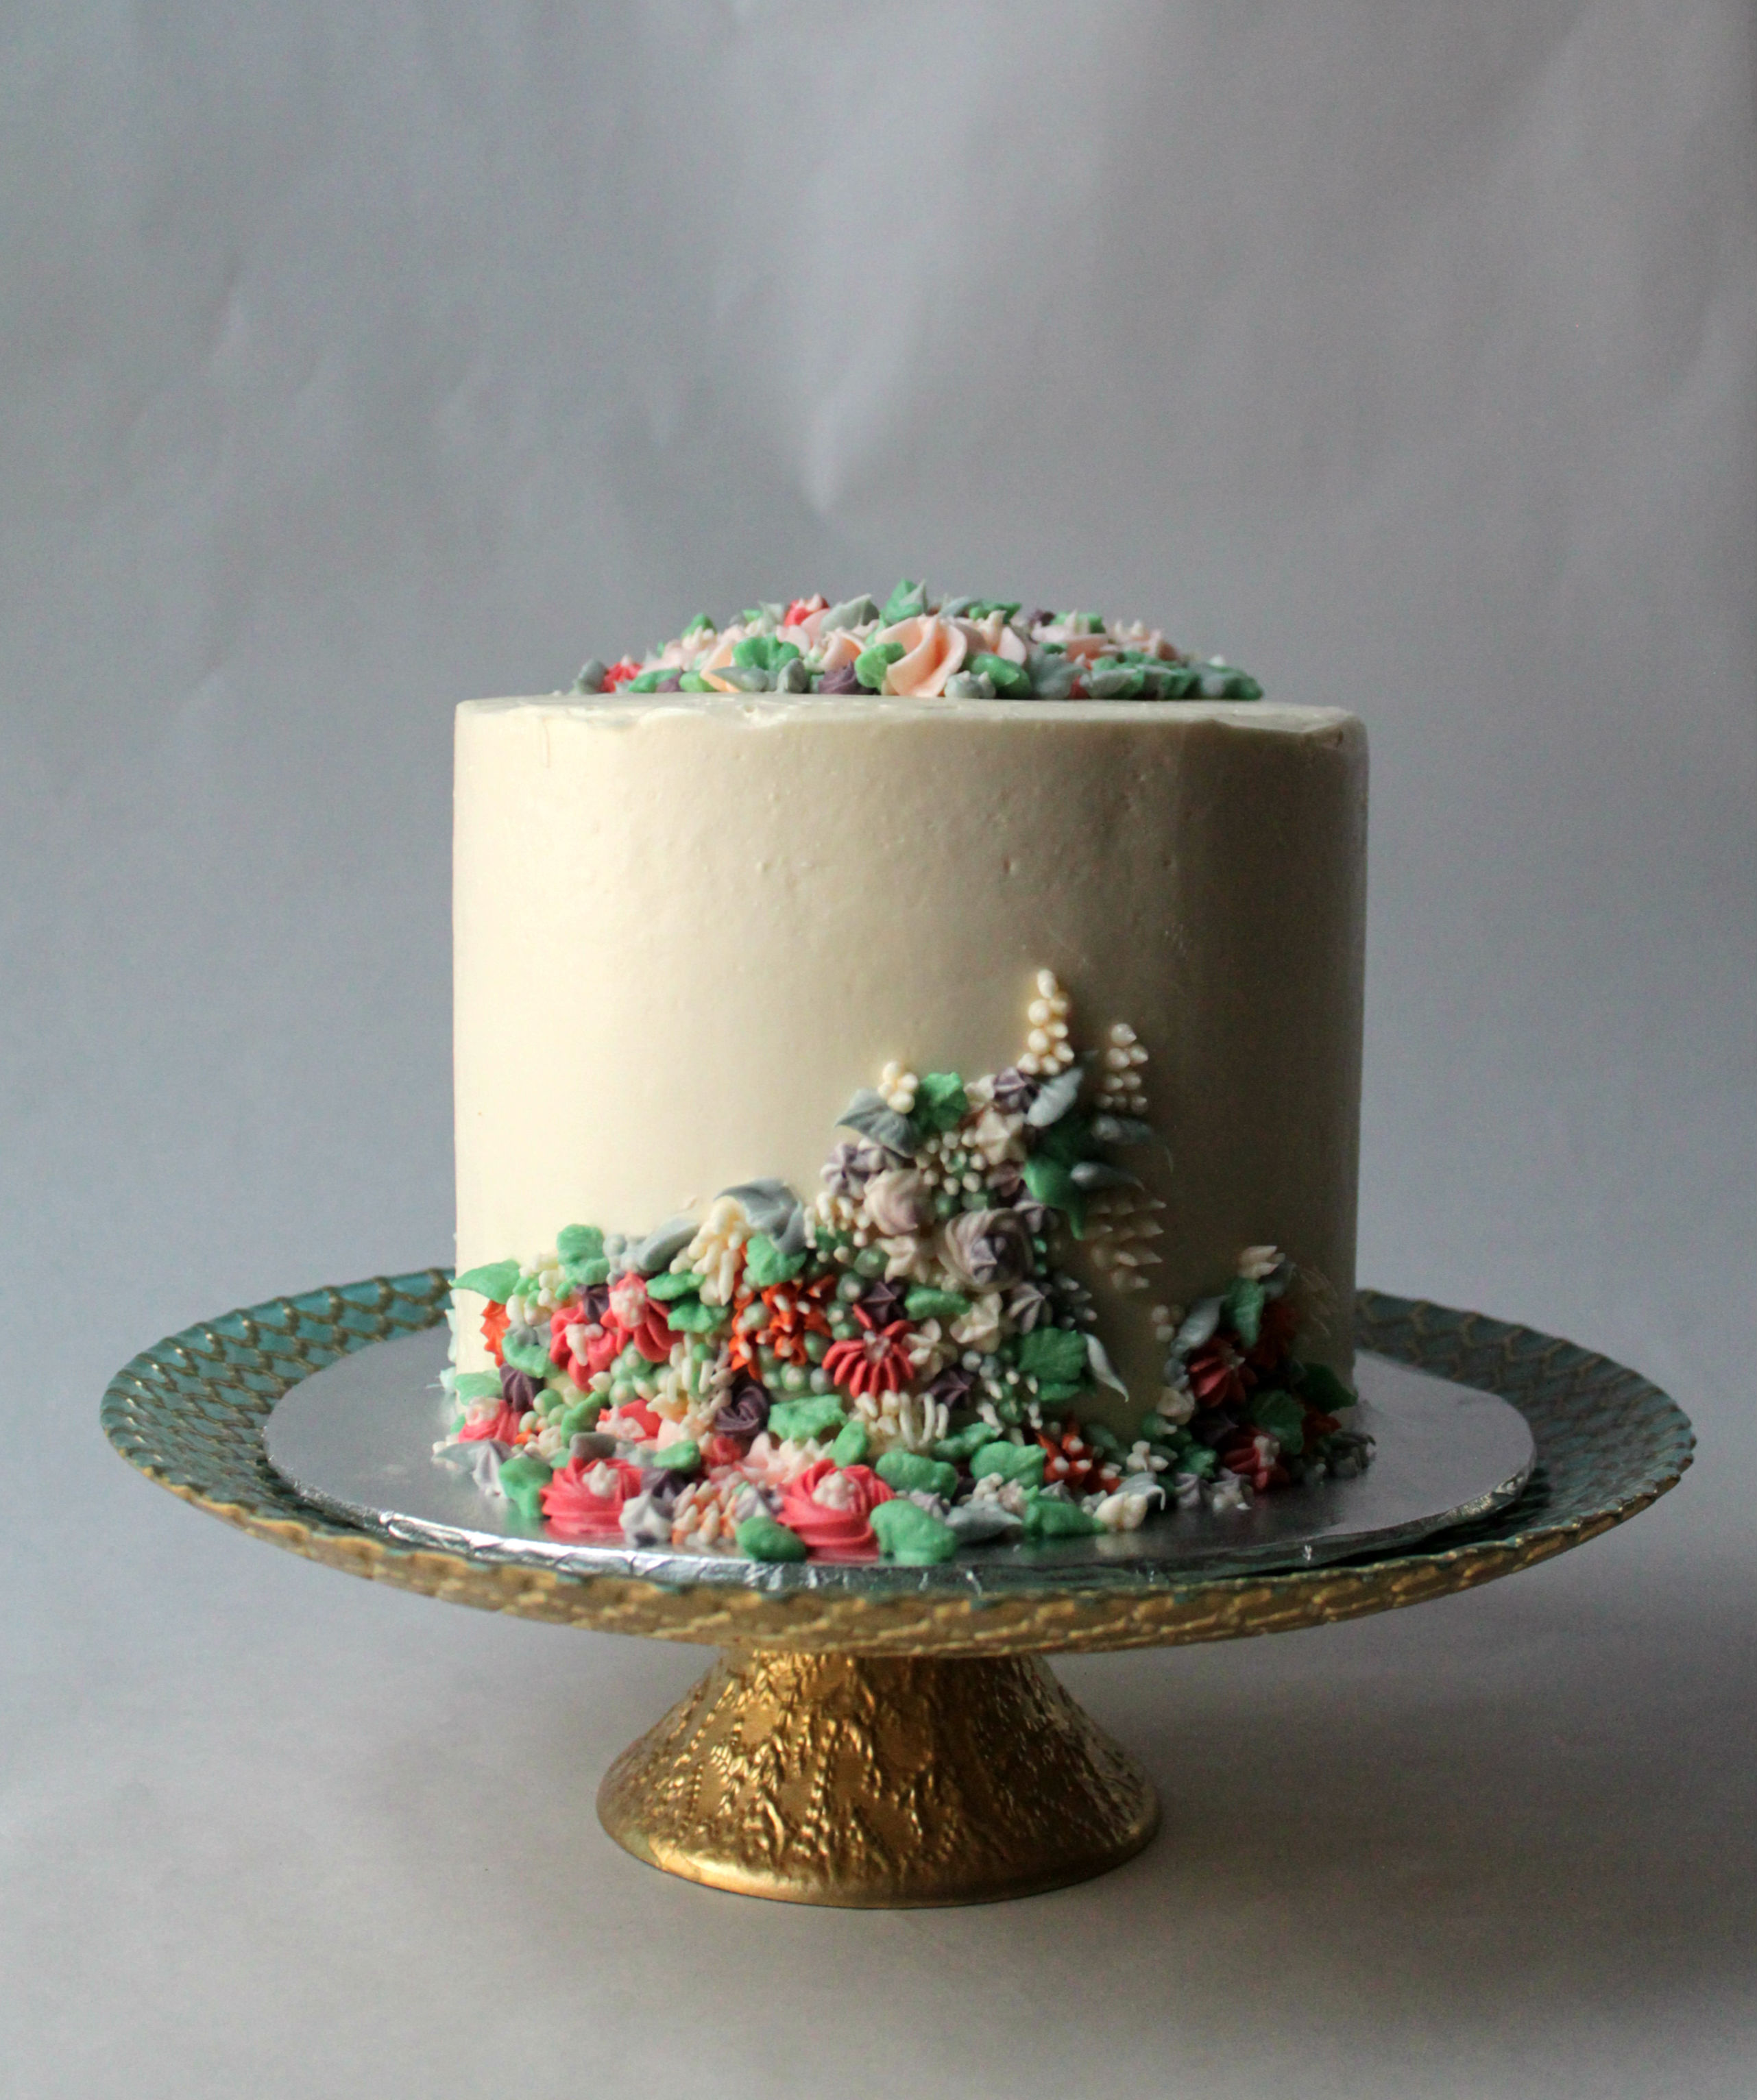 single six inch cake with creeping flowers and other designs in all buttercream